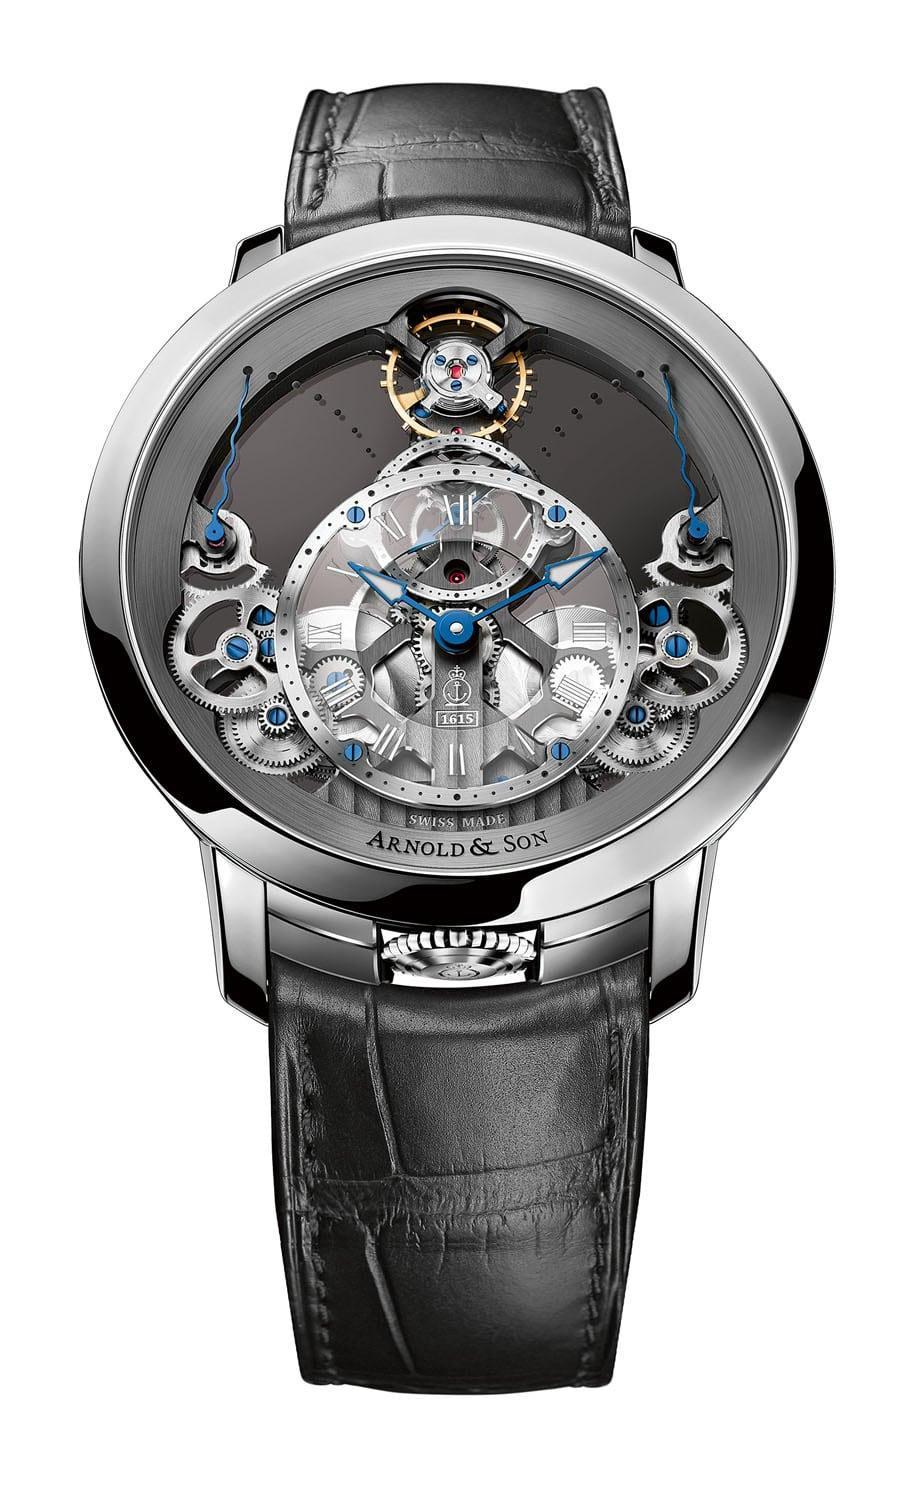 Arnold & Son: Time Pyramid